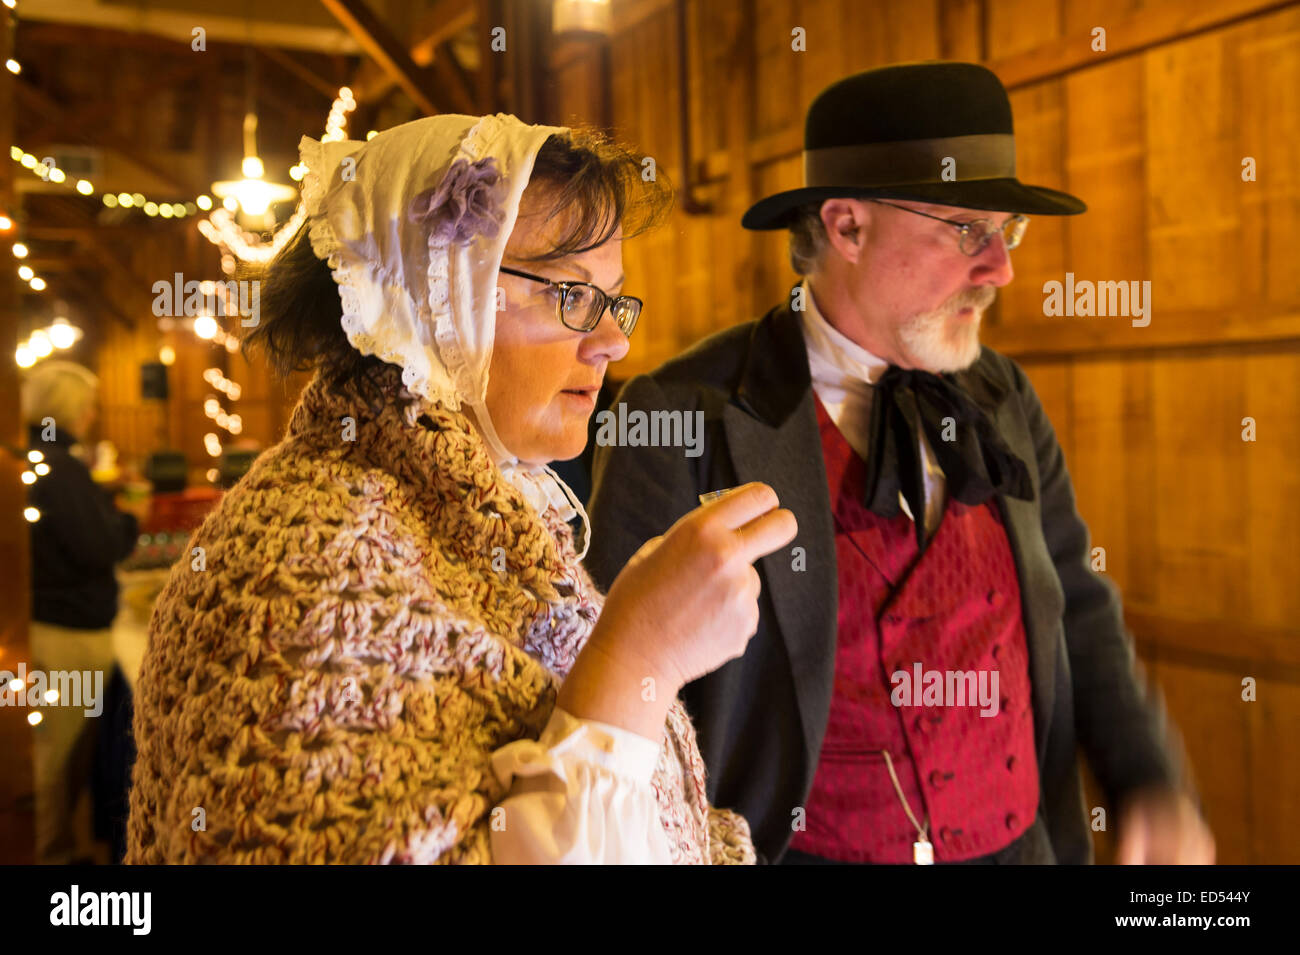 Old Bethpage, New York, USA. December 26, 2014. SHERRI GUTHRIE and husband CHART GUTHRIE, dressed in traditional - Stock Image